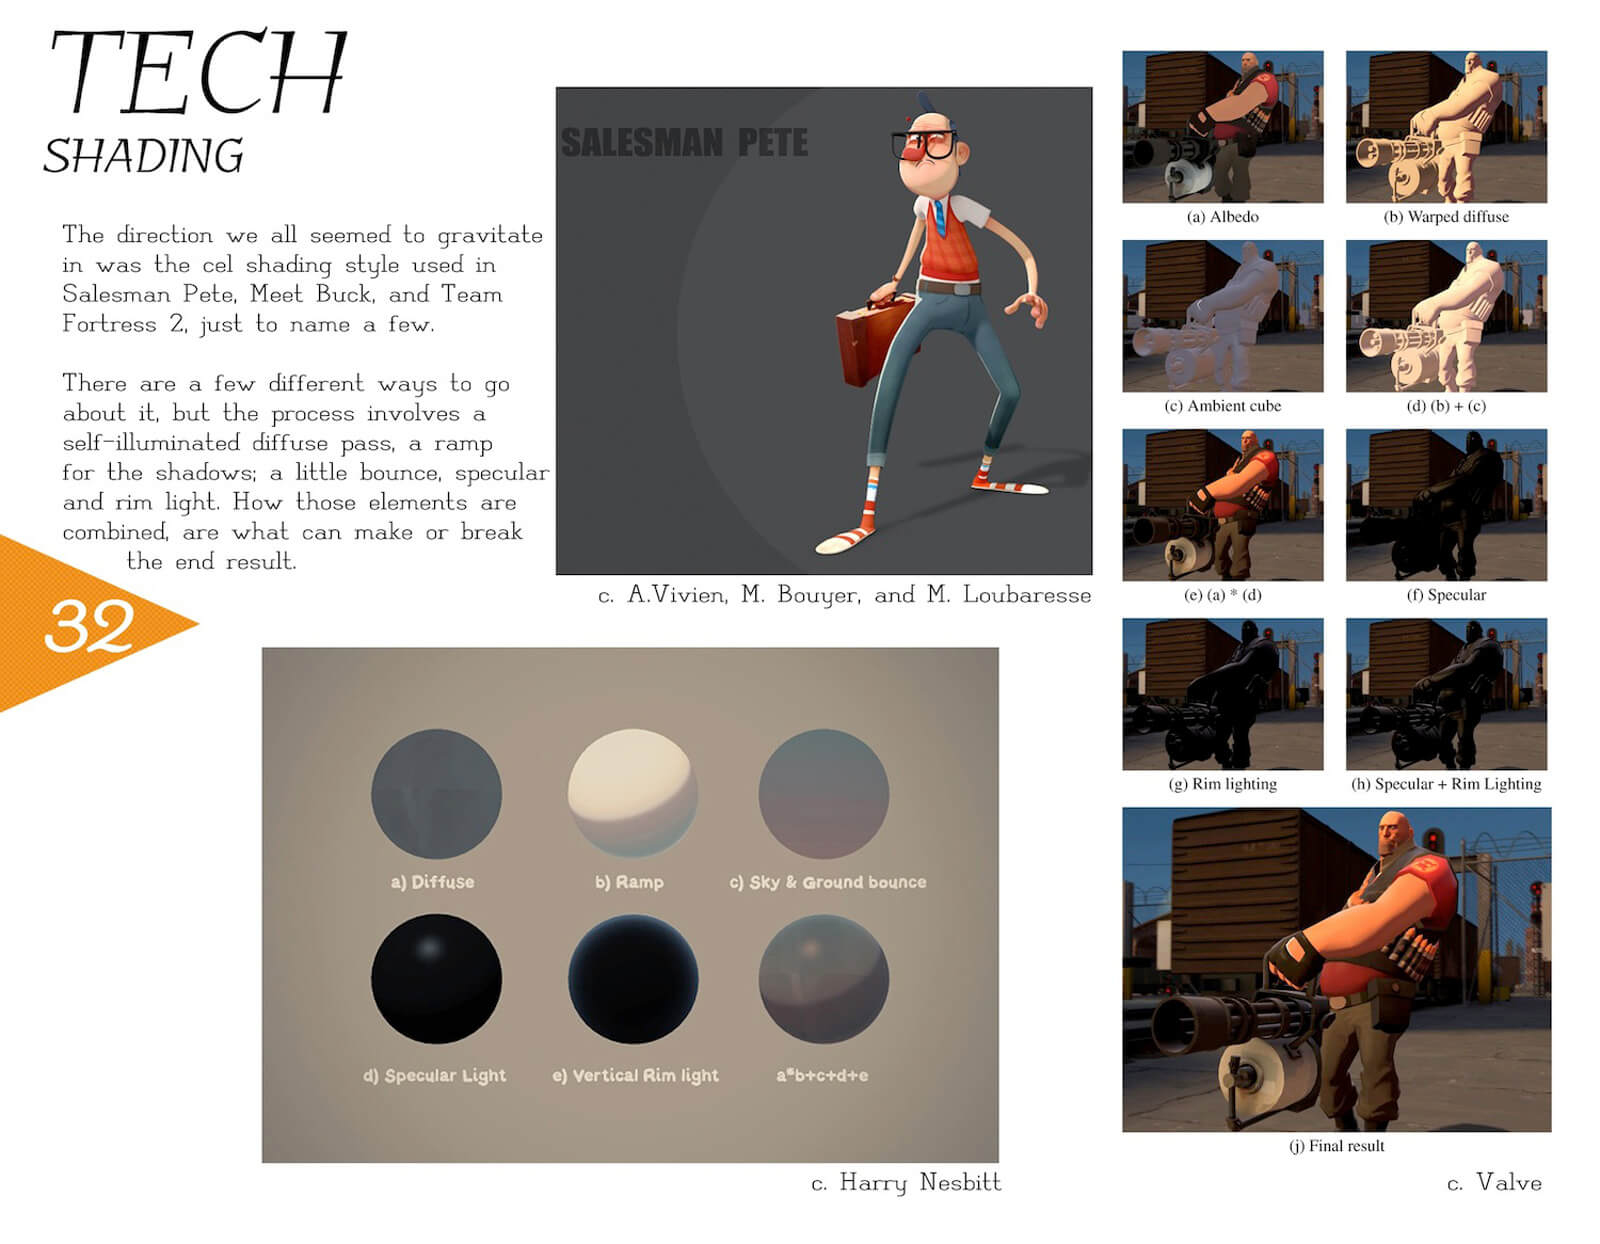 Shading slide for the film Super Secret describing the various shading effects at work on the characters